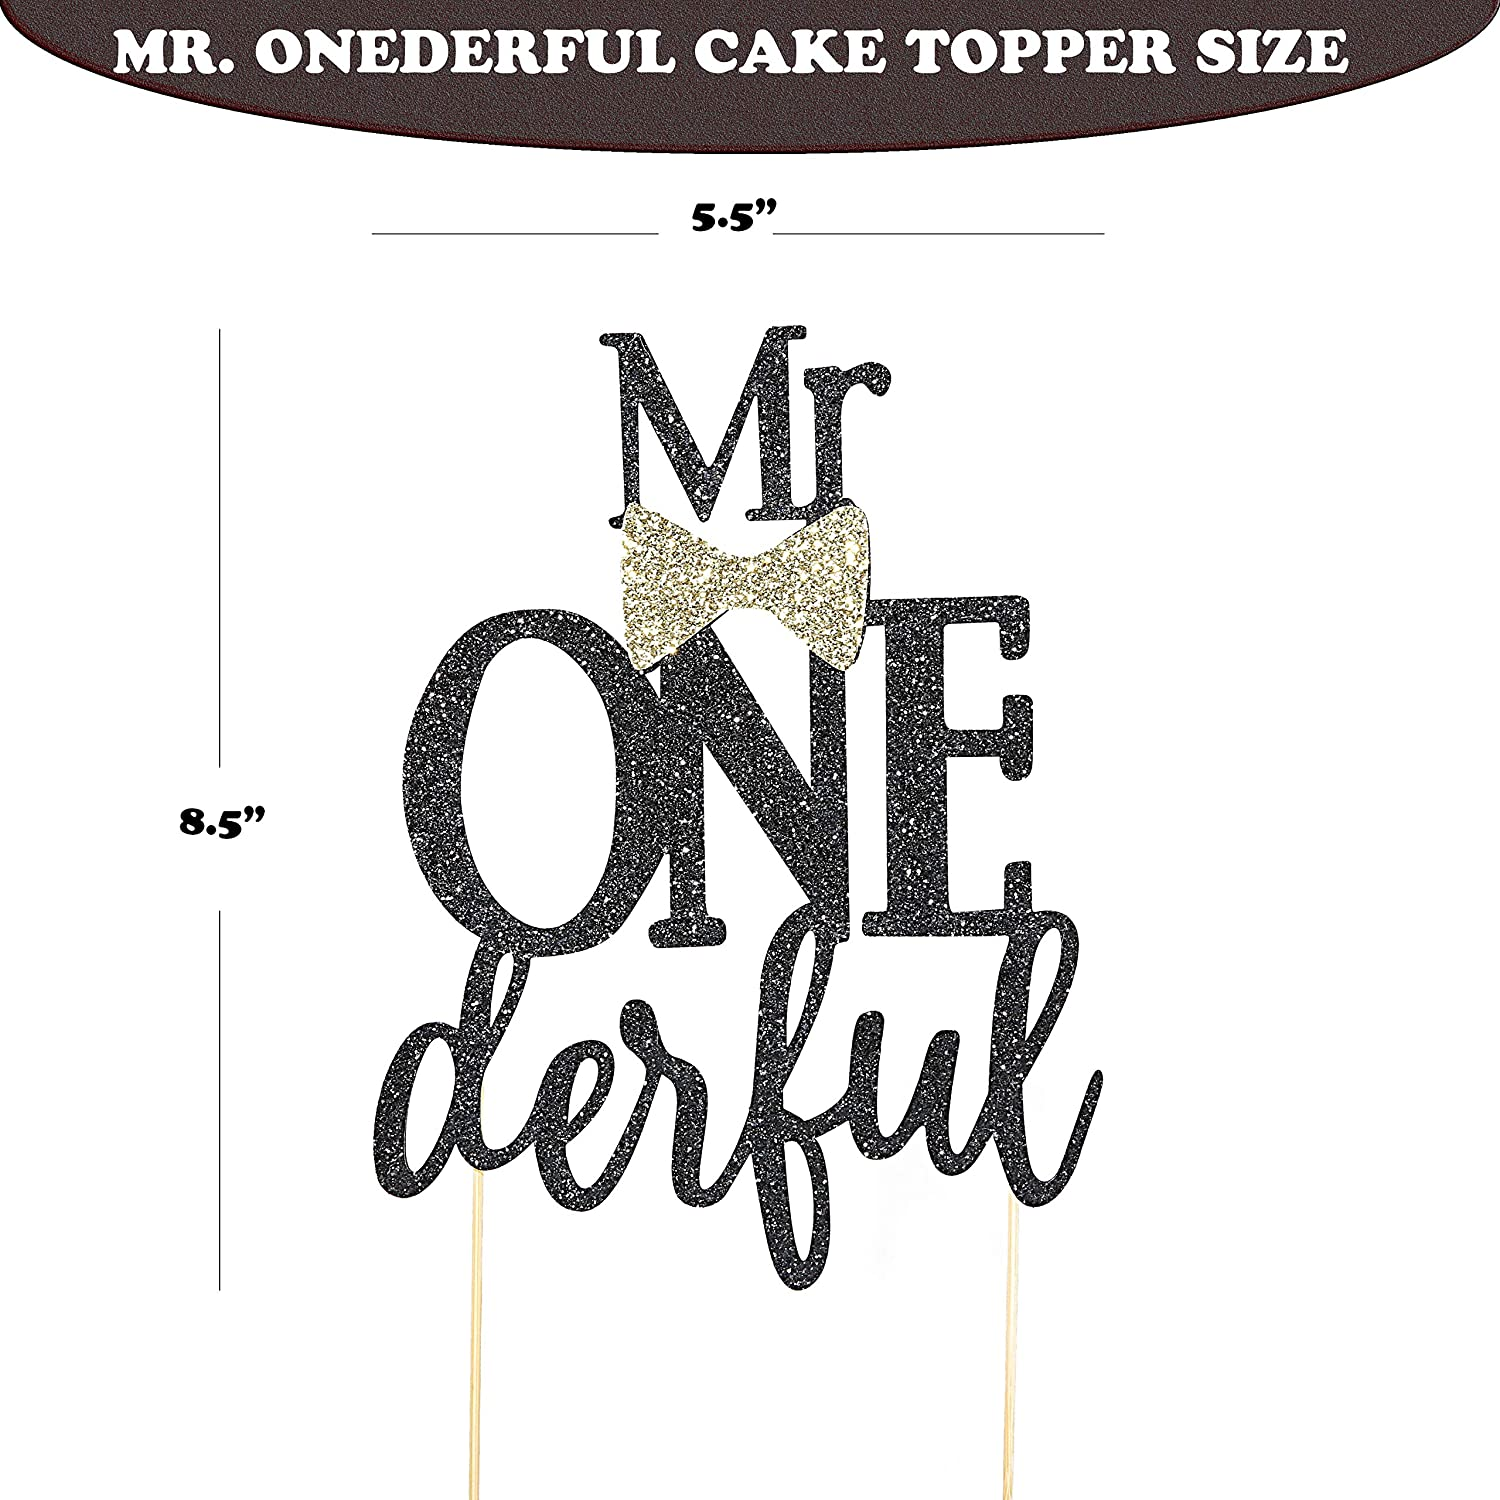 Mr Onederful Cake Topper For Birthday - Black Glitter Cake Topper Bow Tie First Birthday Boy Baby Shower Cake Smash Party, Photo Booth Props, Glitter ...